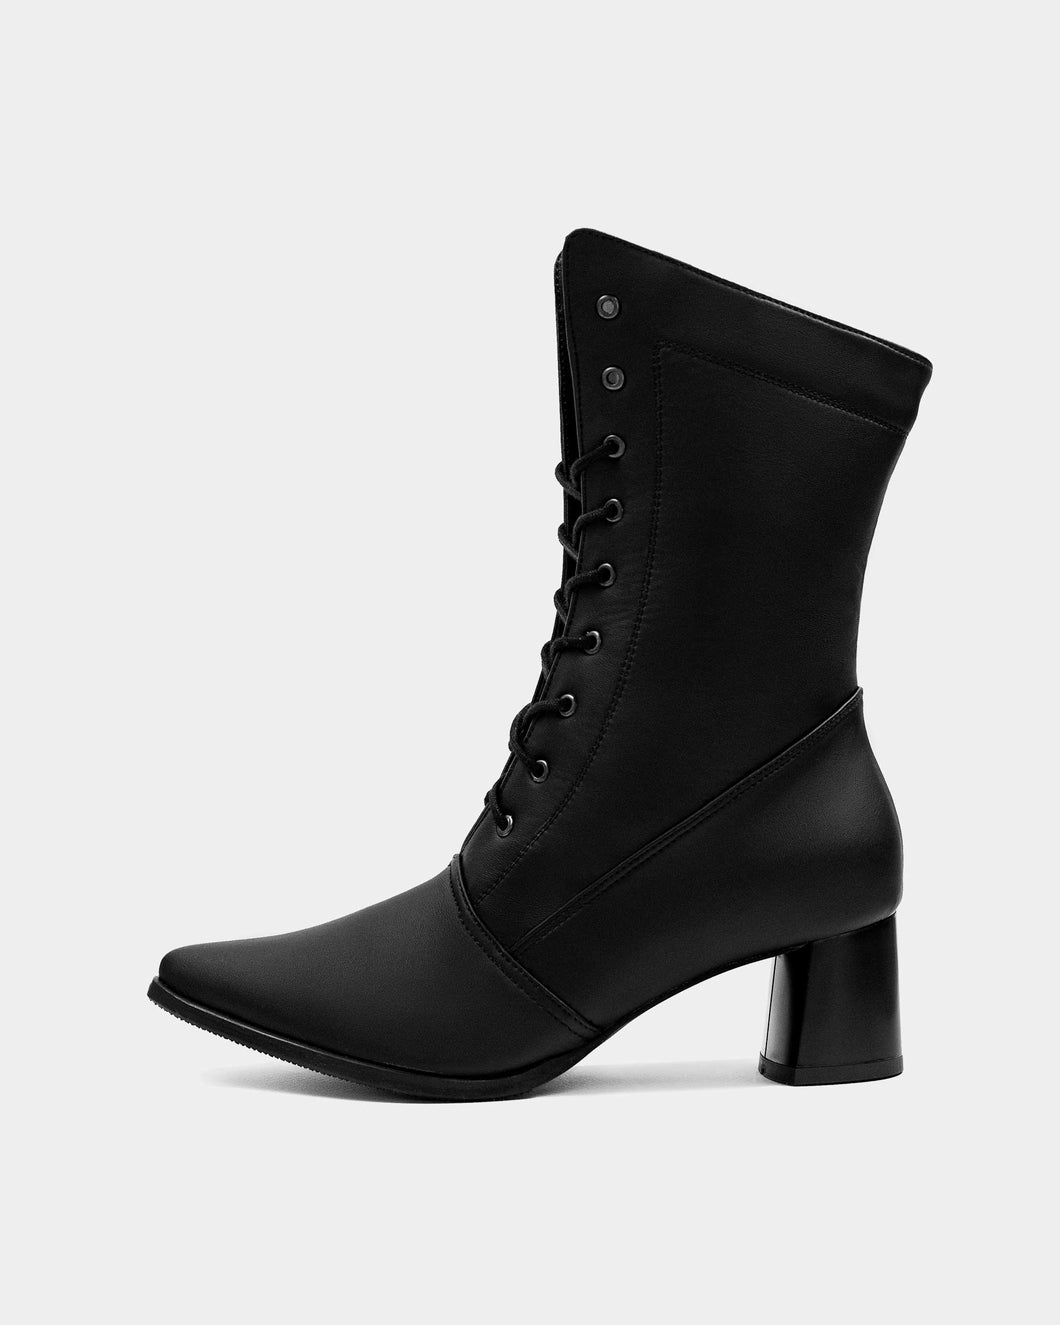 High Boots Black cactus leather boots